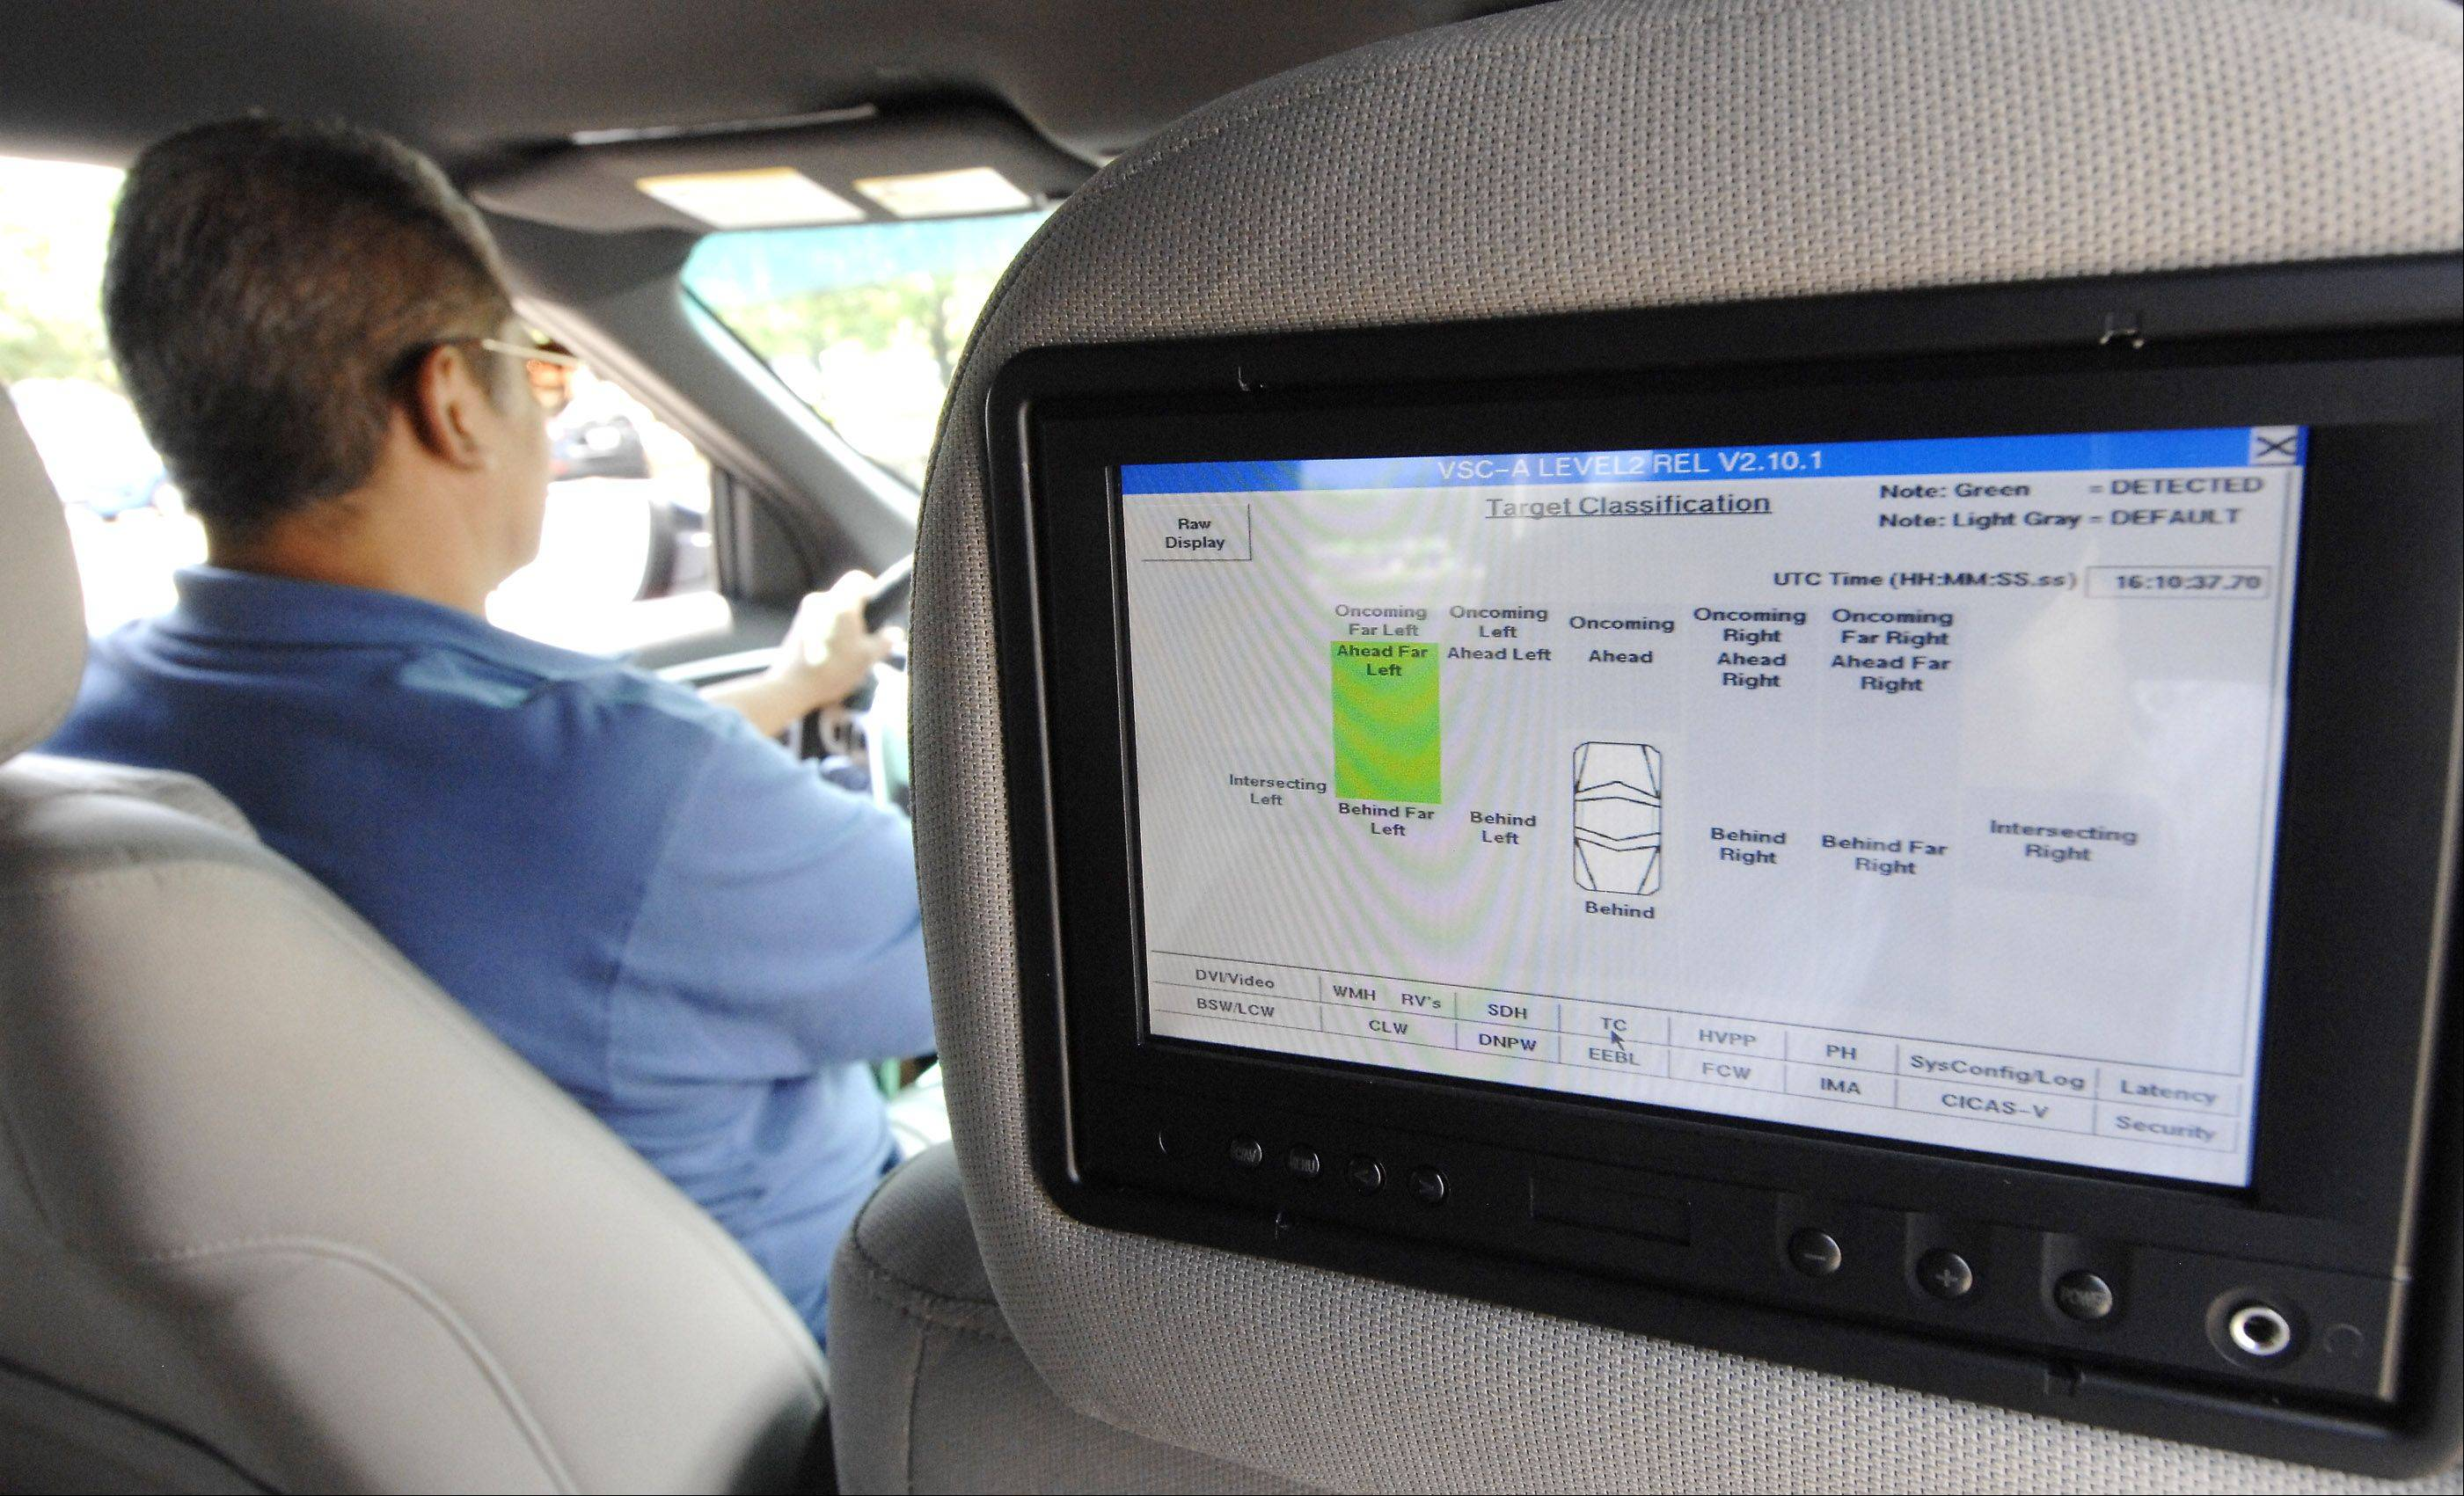 A demonstration display inside a prototype Ford intelligent vehicle Wednesday in Lombard shows how the system lights up in green to warn the driver of another car to the left.